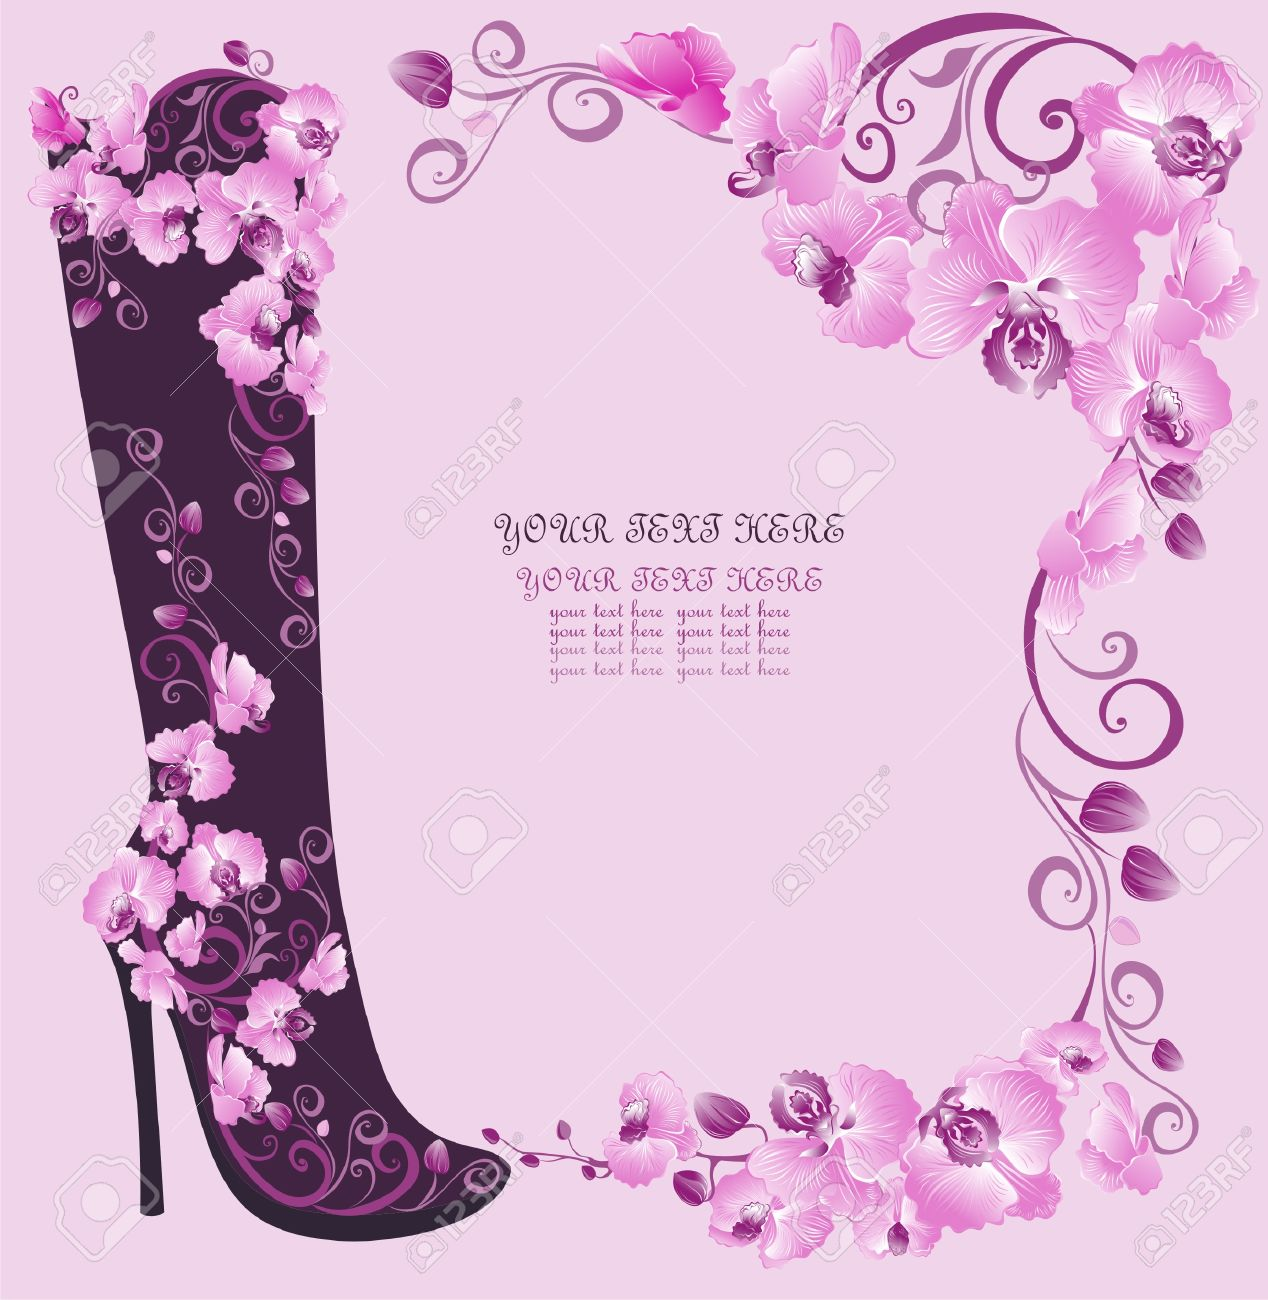 Stiletto High Heels With Orchids Royalty Free Cliparts, Vectors.